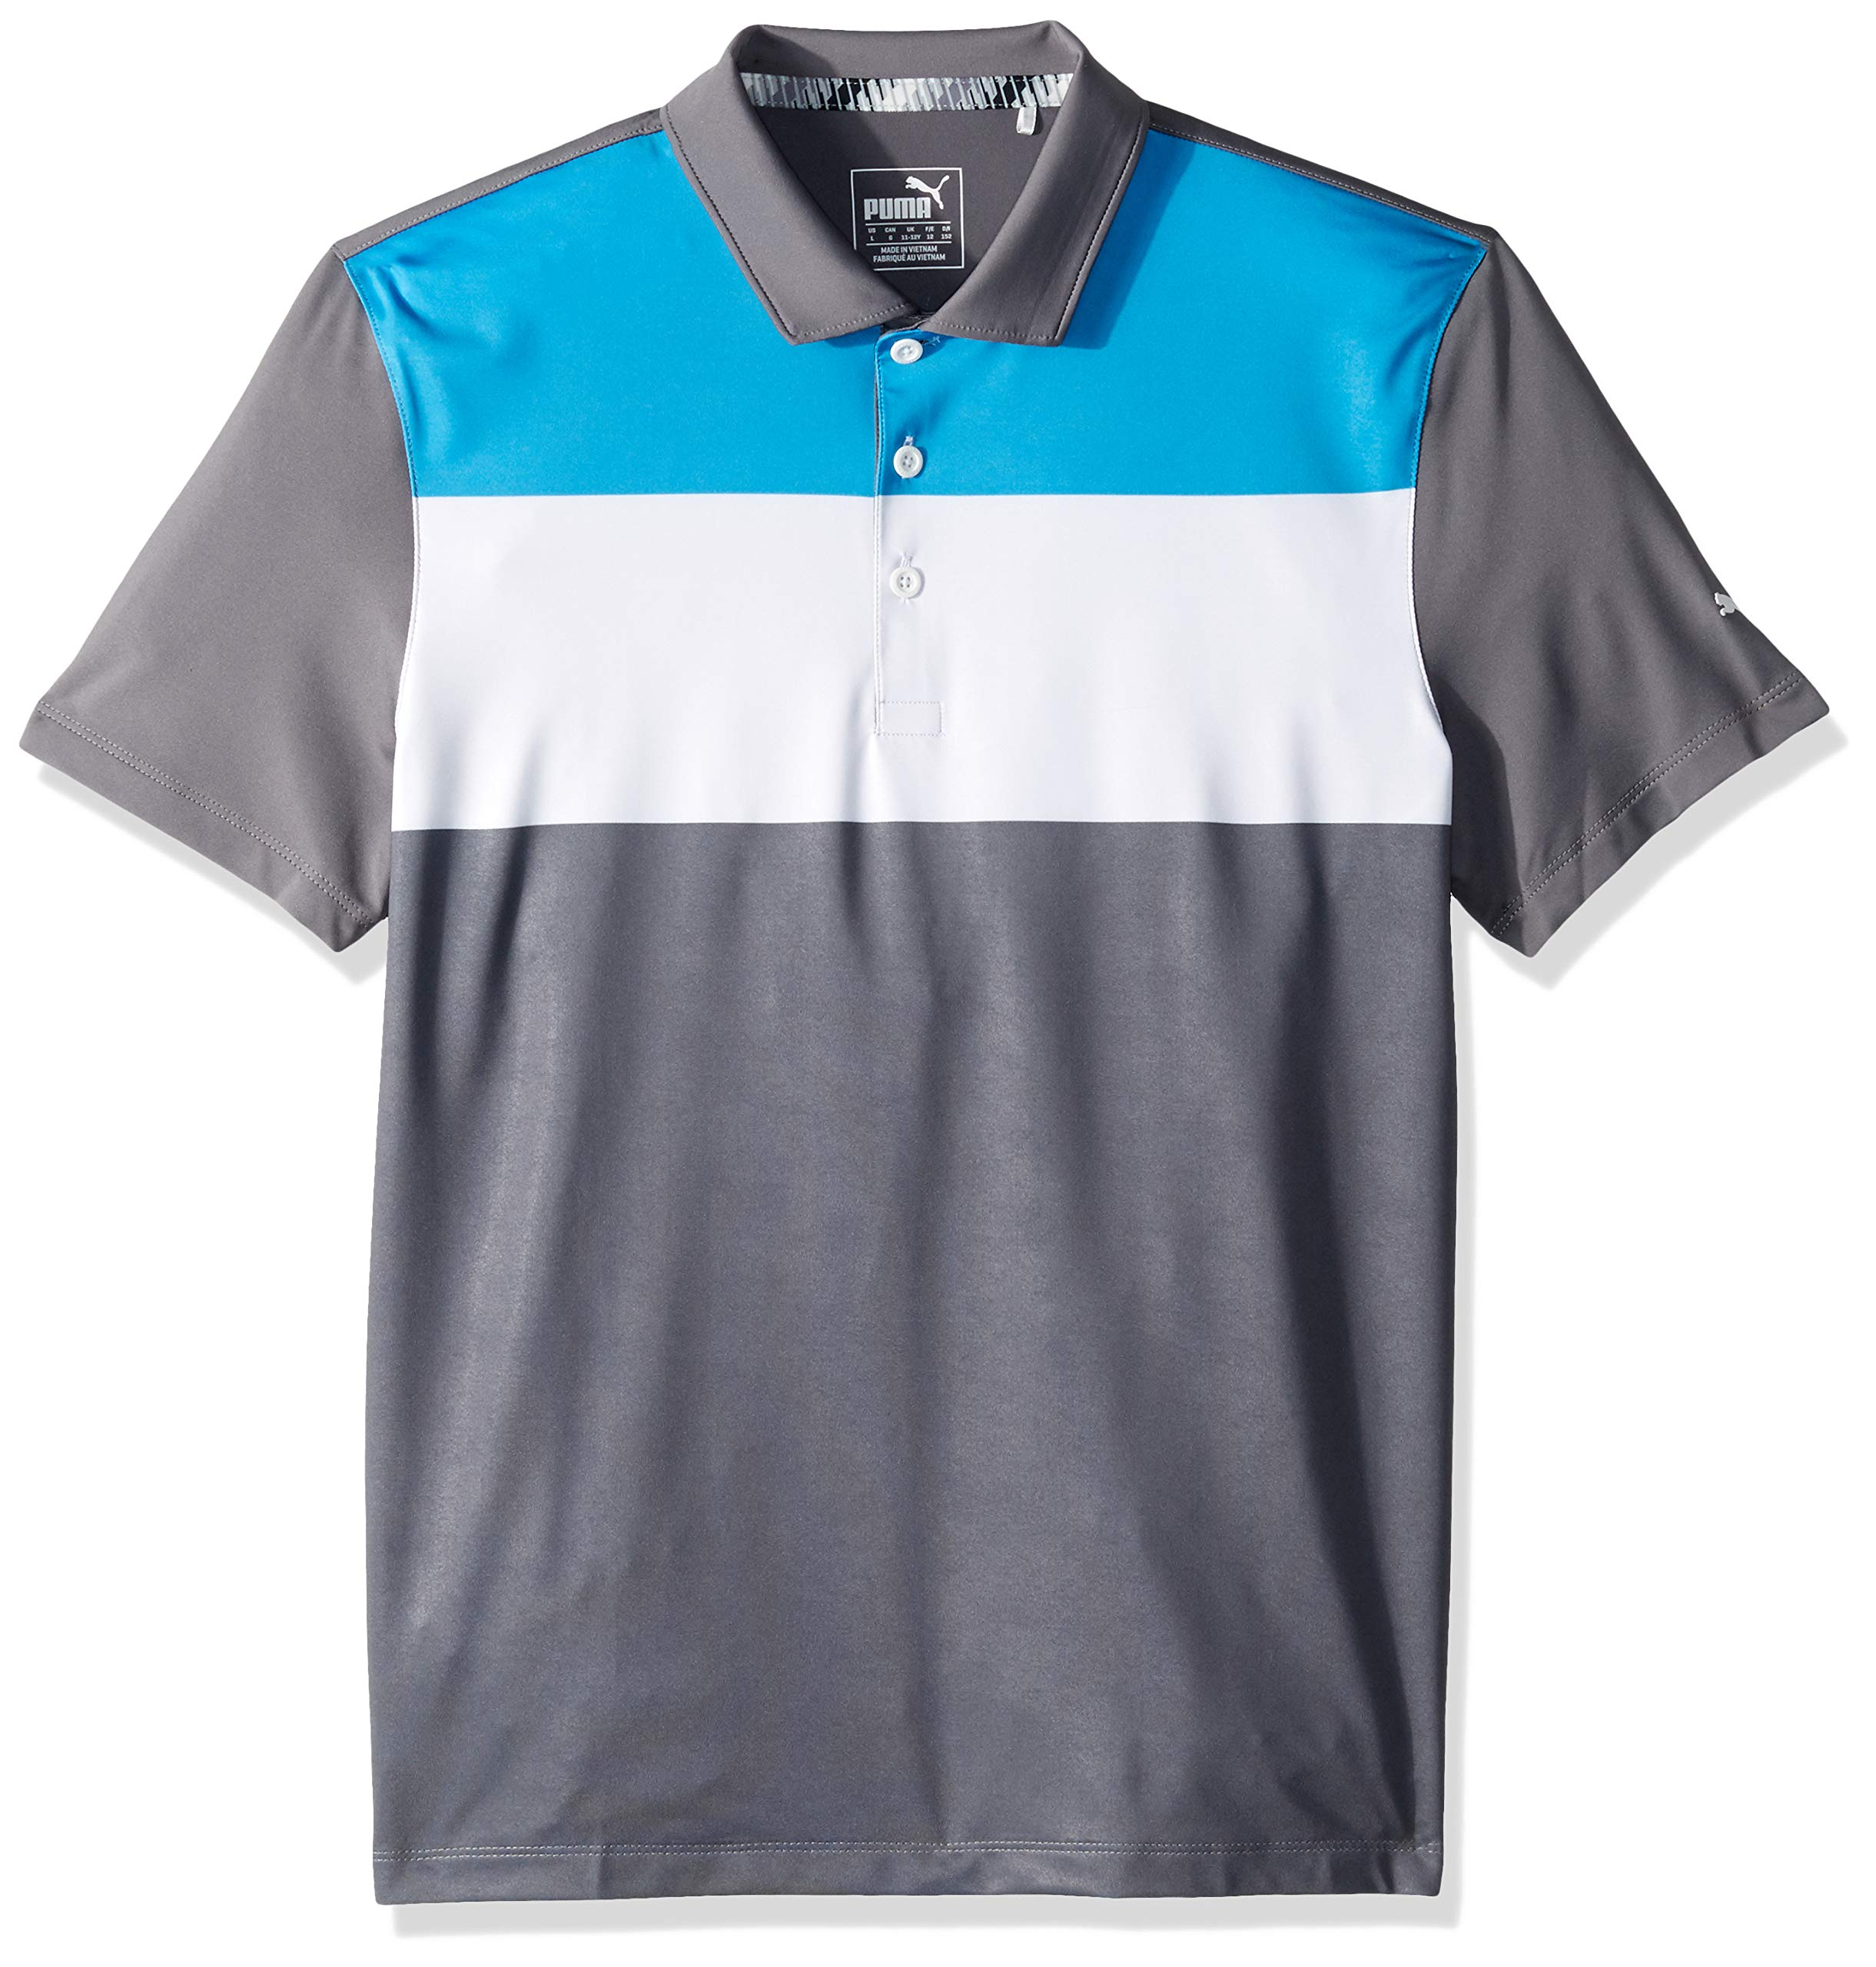 Puma Golf Boys 2019 Nineties Polo, Bleu Azure-Quiet Shade, Small by PUMA